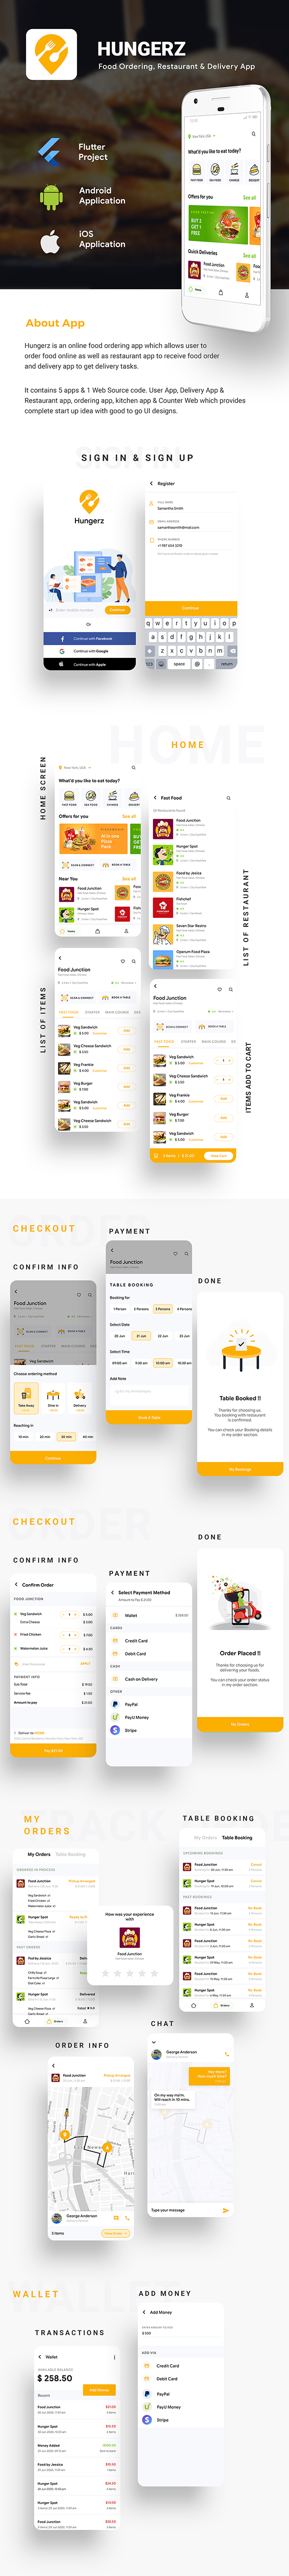 8 in 1 multi Restaurant Food Ordering App|Food Delivery App|Android+iOS App Template|Flutter Hungerz - 10